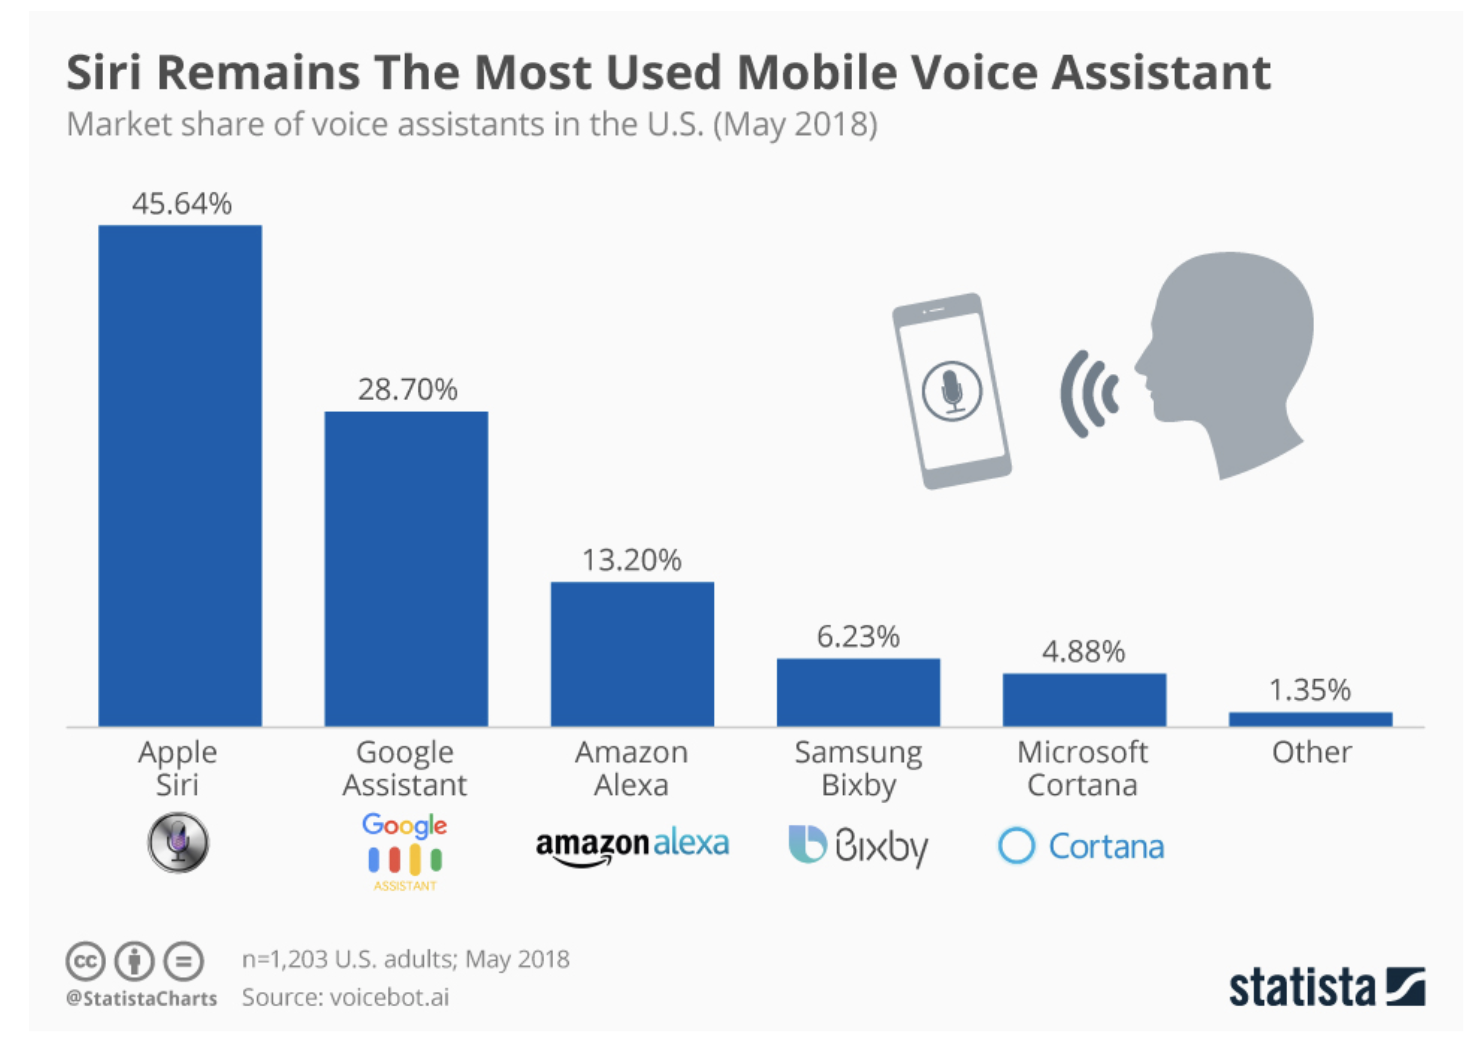 Graph of market share of voice assistants in the US